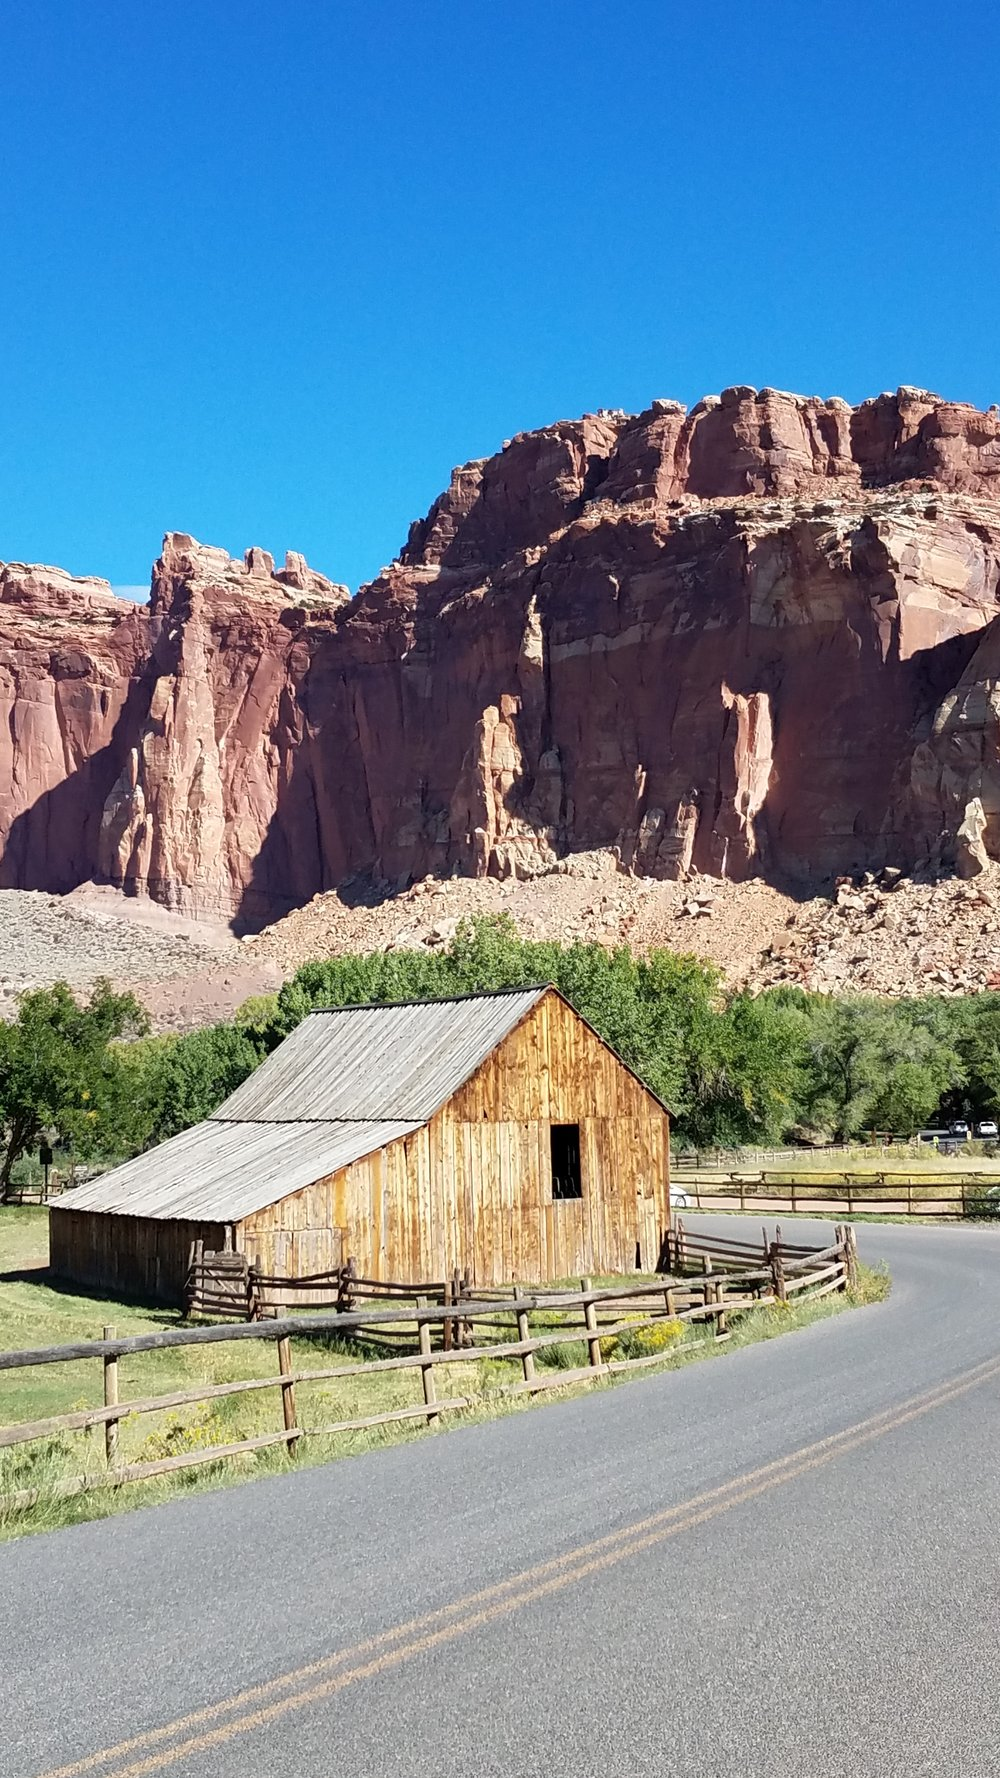 Fremont River Valley, Capitol Reef National Park, UT